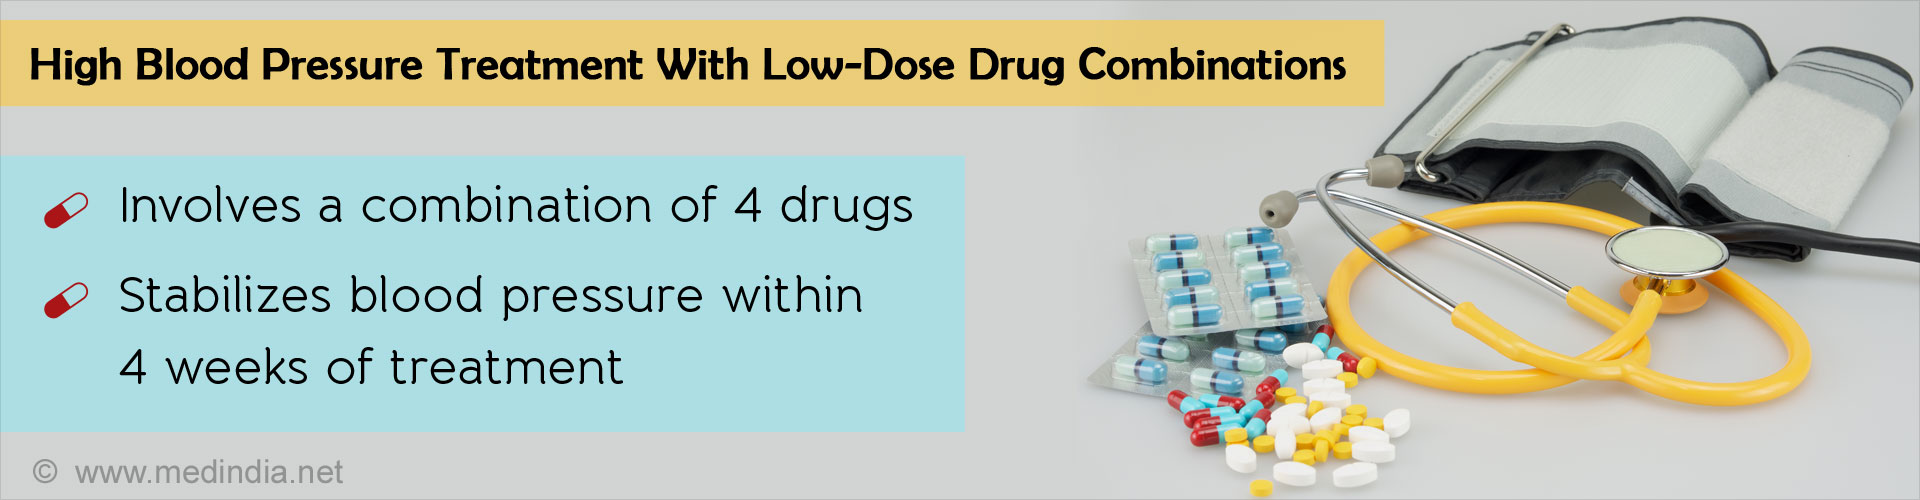 Ultra Low-dose Drug Combinations For Treating High Blood Pressure